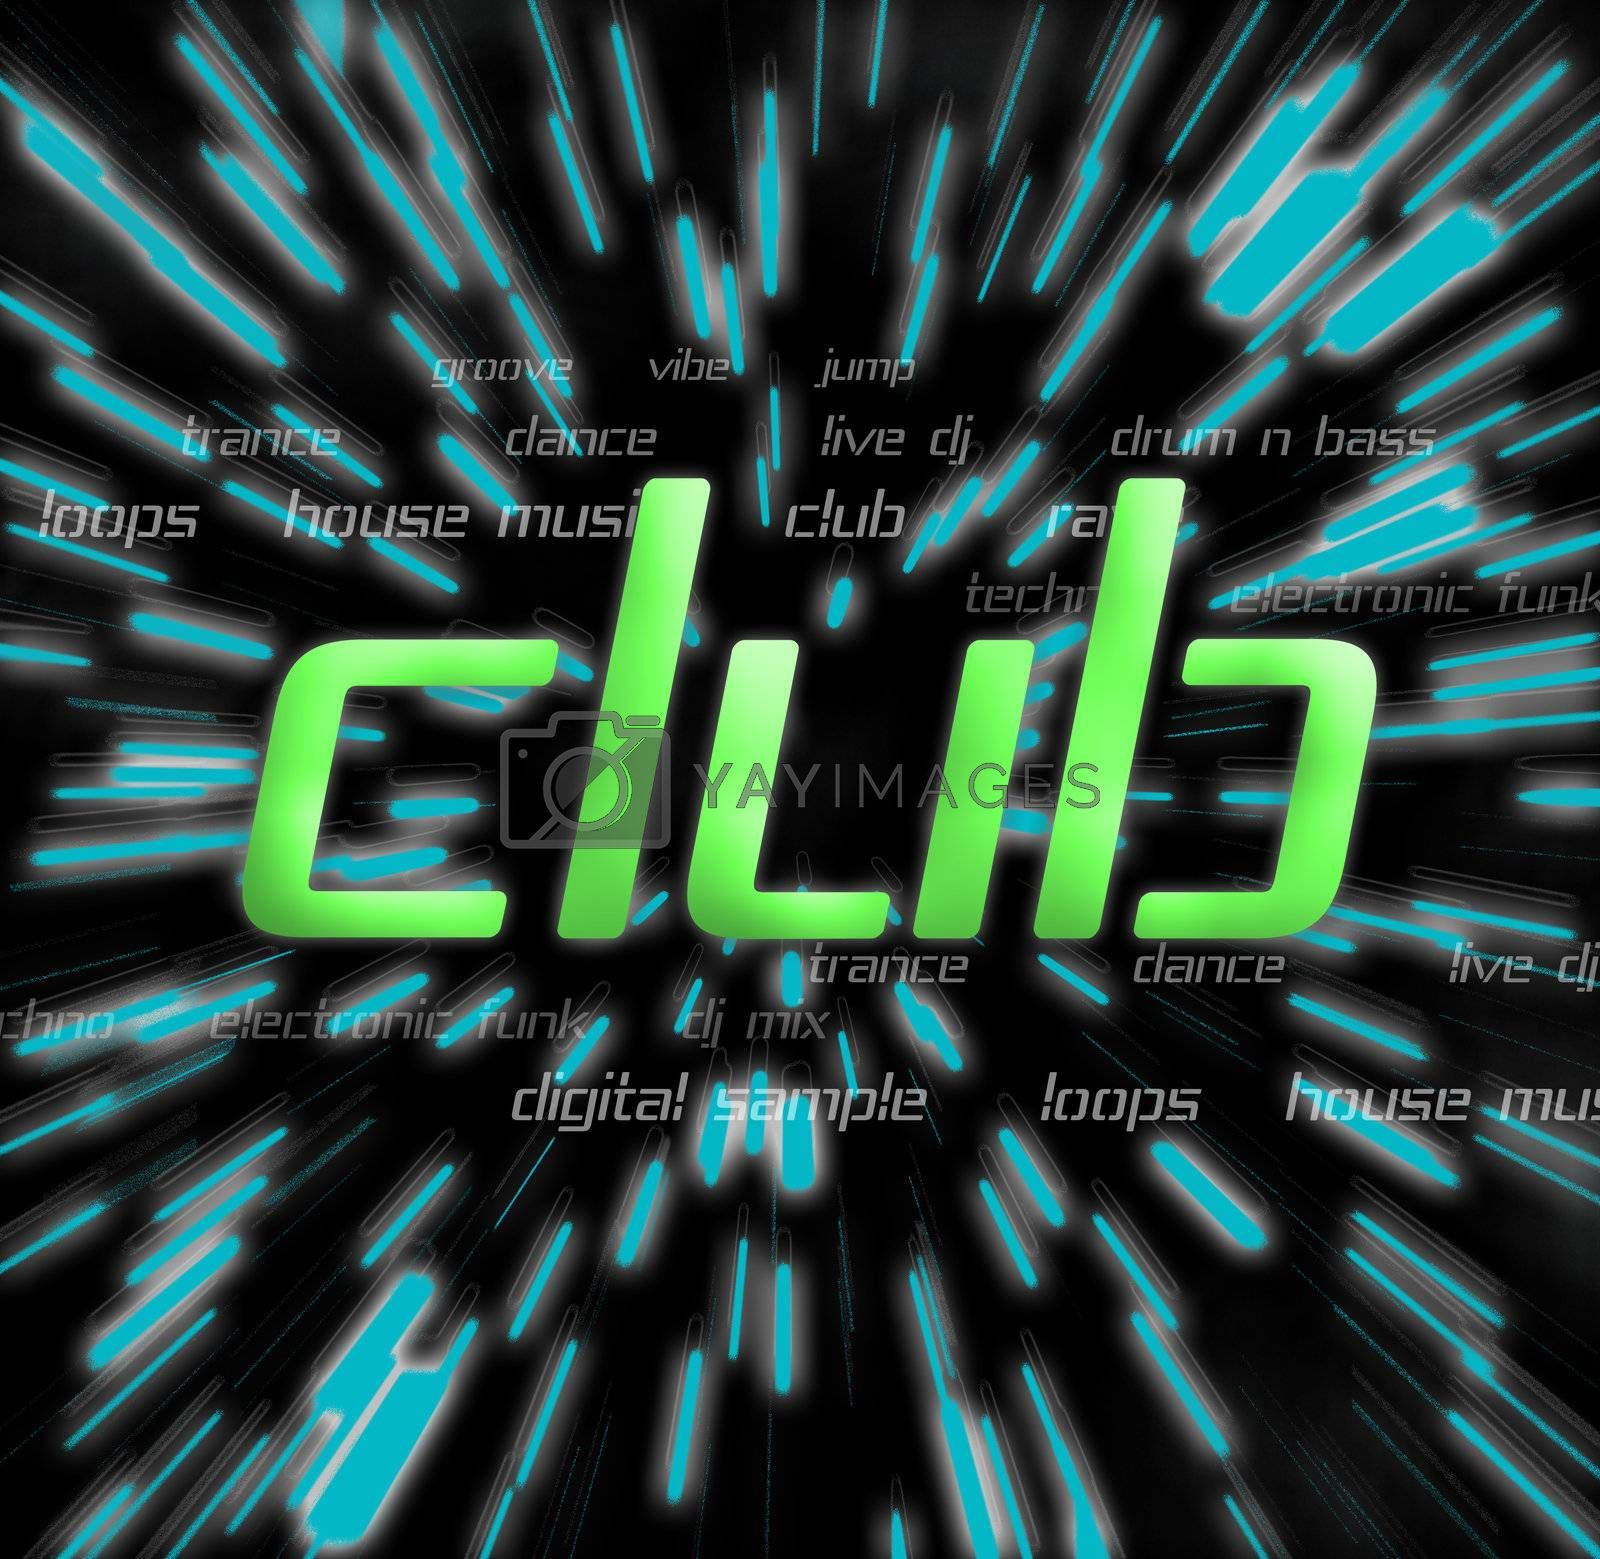 a club montage over a star field background